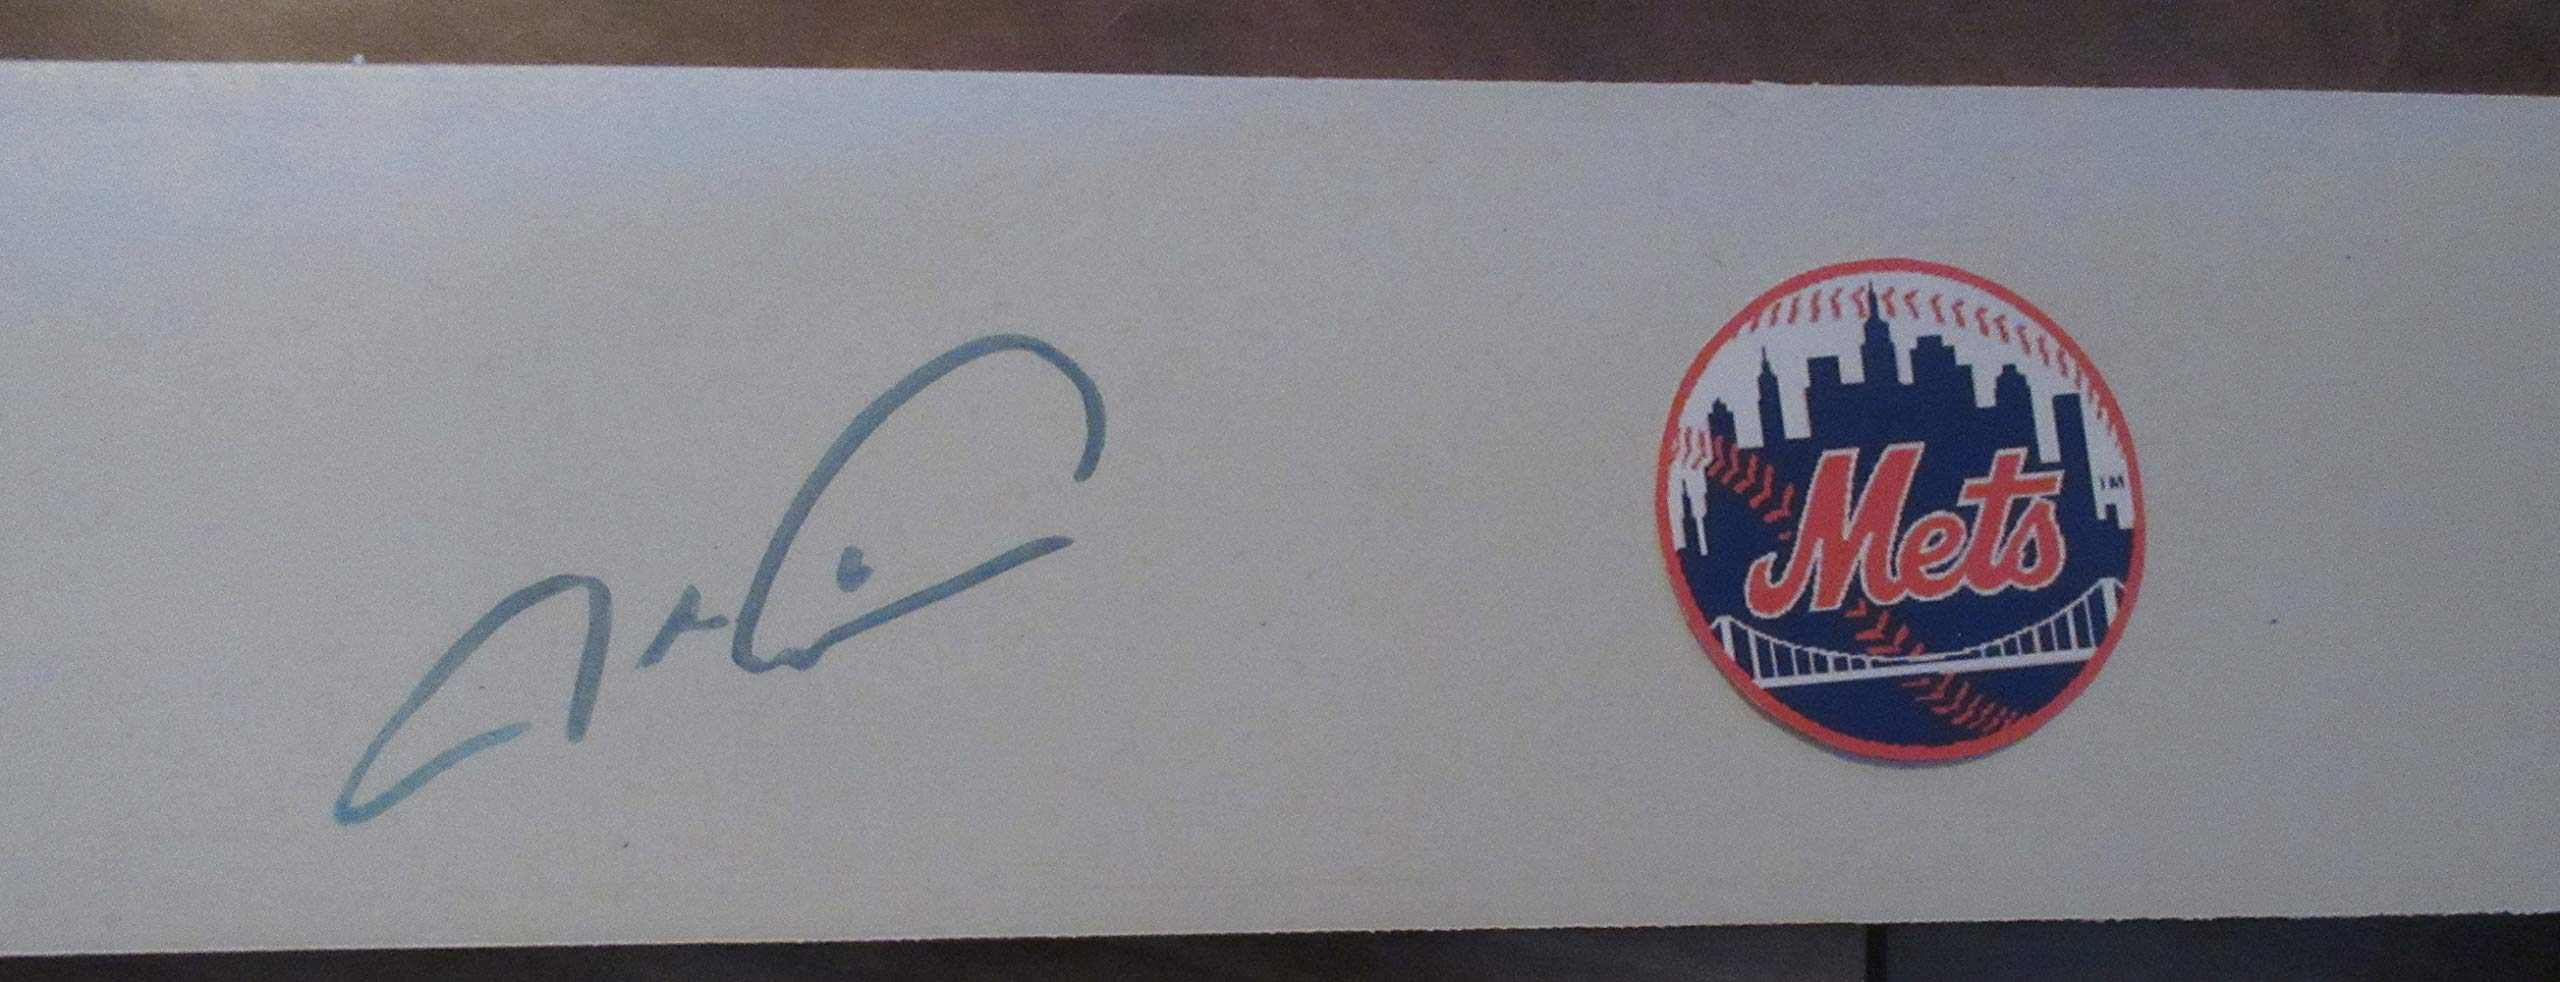 Jacob DeGrom Autographed New York Mets Logo Pitching Rubber, New York Mets, Cy Young Award, All Star